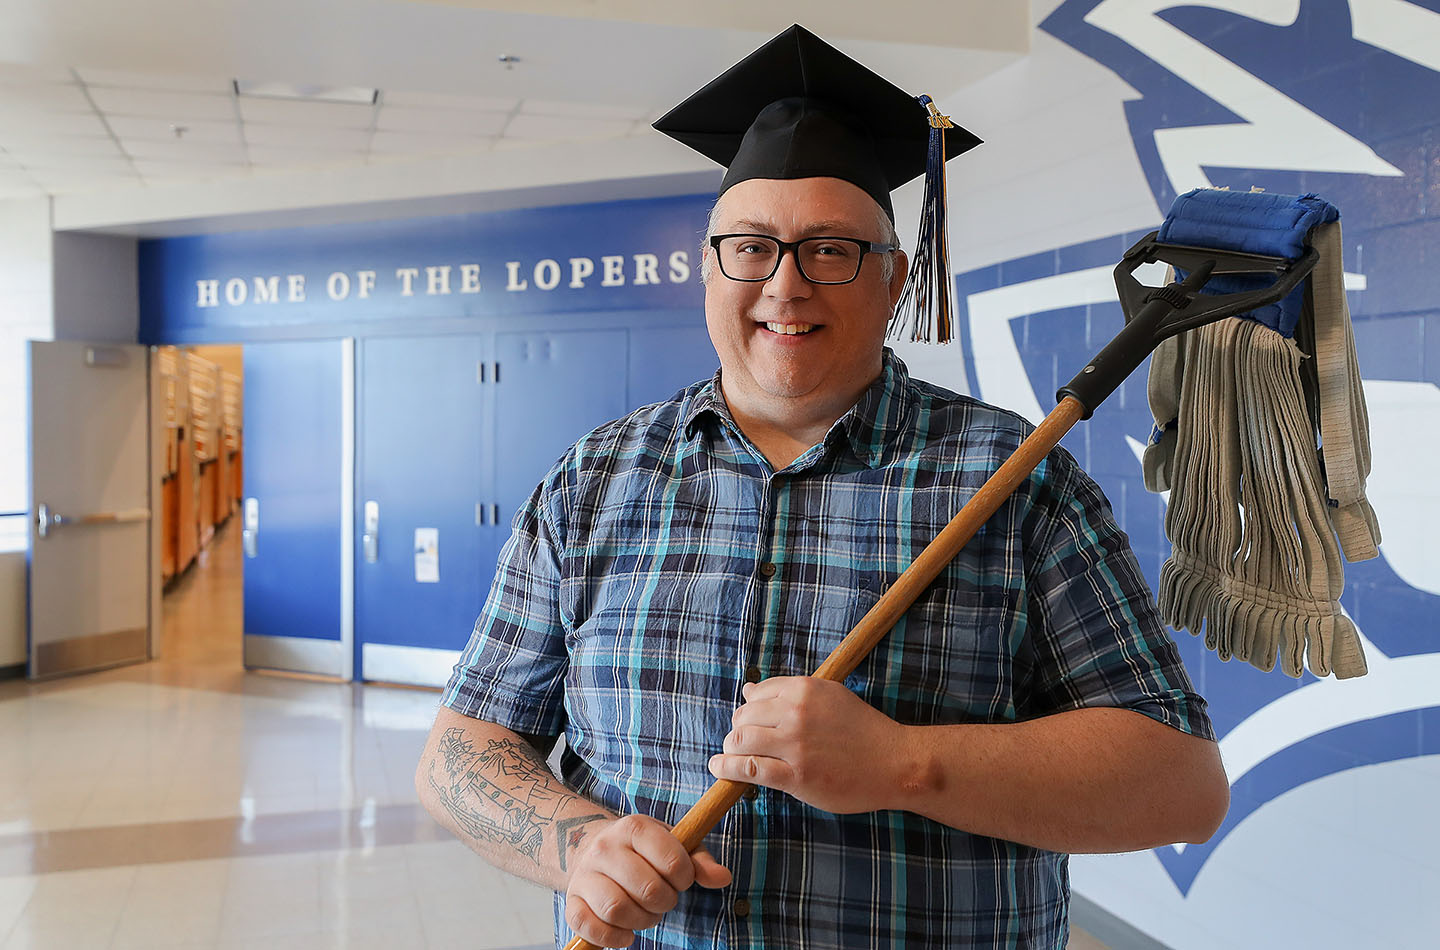 Sonny O'Connor worked as a custodian while attending UNK and used the university's employee scholarship program to cover tuition costs. He'll graduate Friday with a bachelor's degree in general studies. (Photo by Erika Pritchard, UNK Communications)